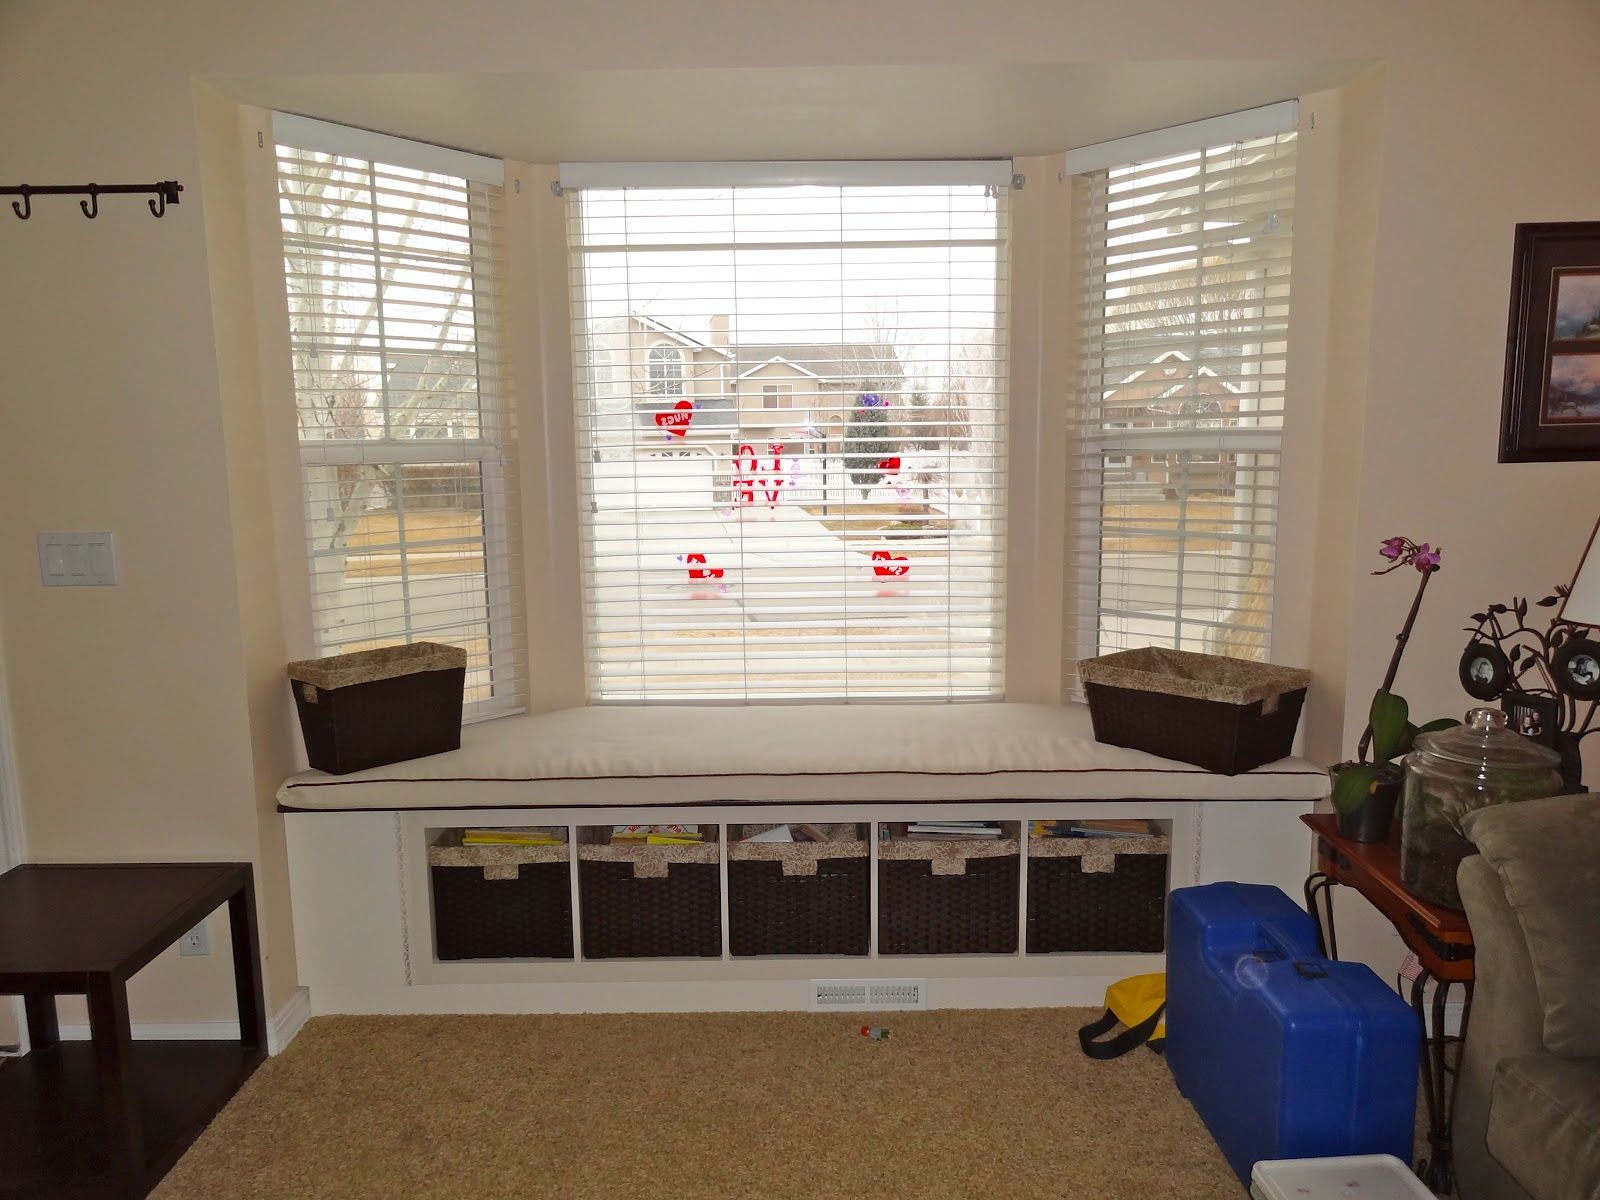 Bedroom bay window designs - 17 Cozy Window Seat Designs With Extra Storage Space